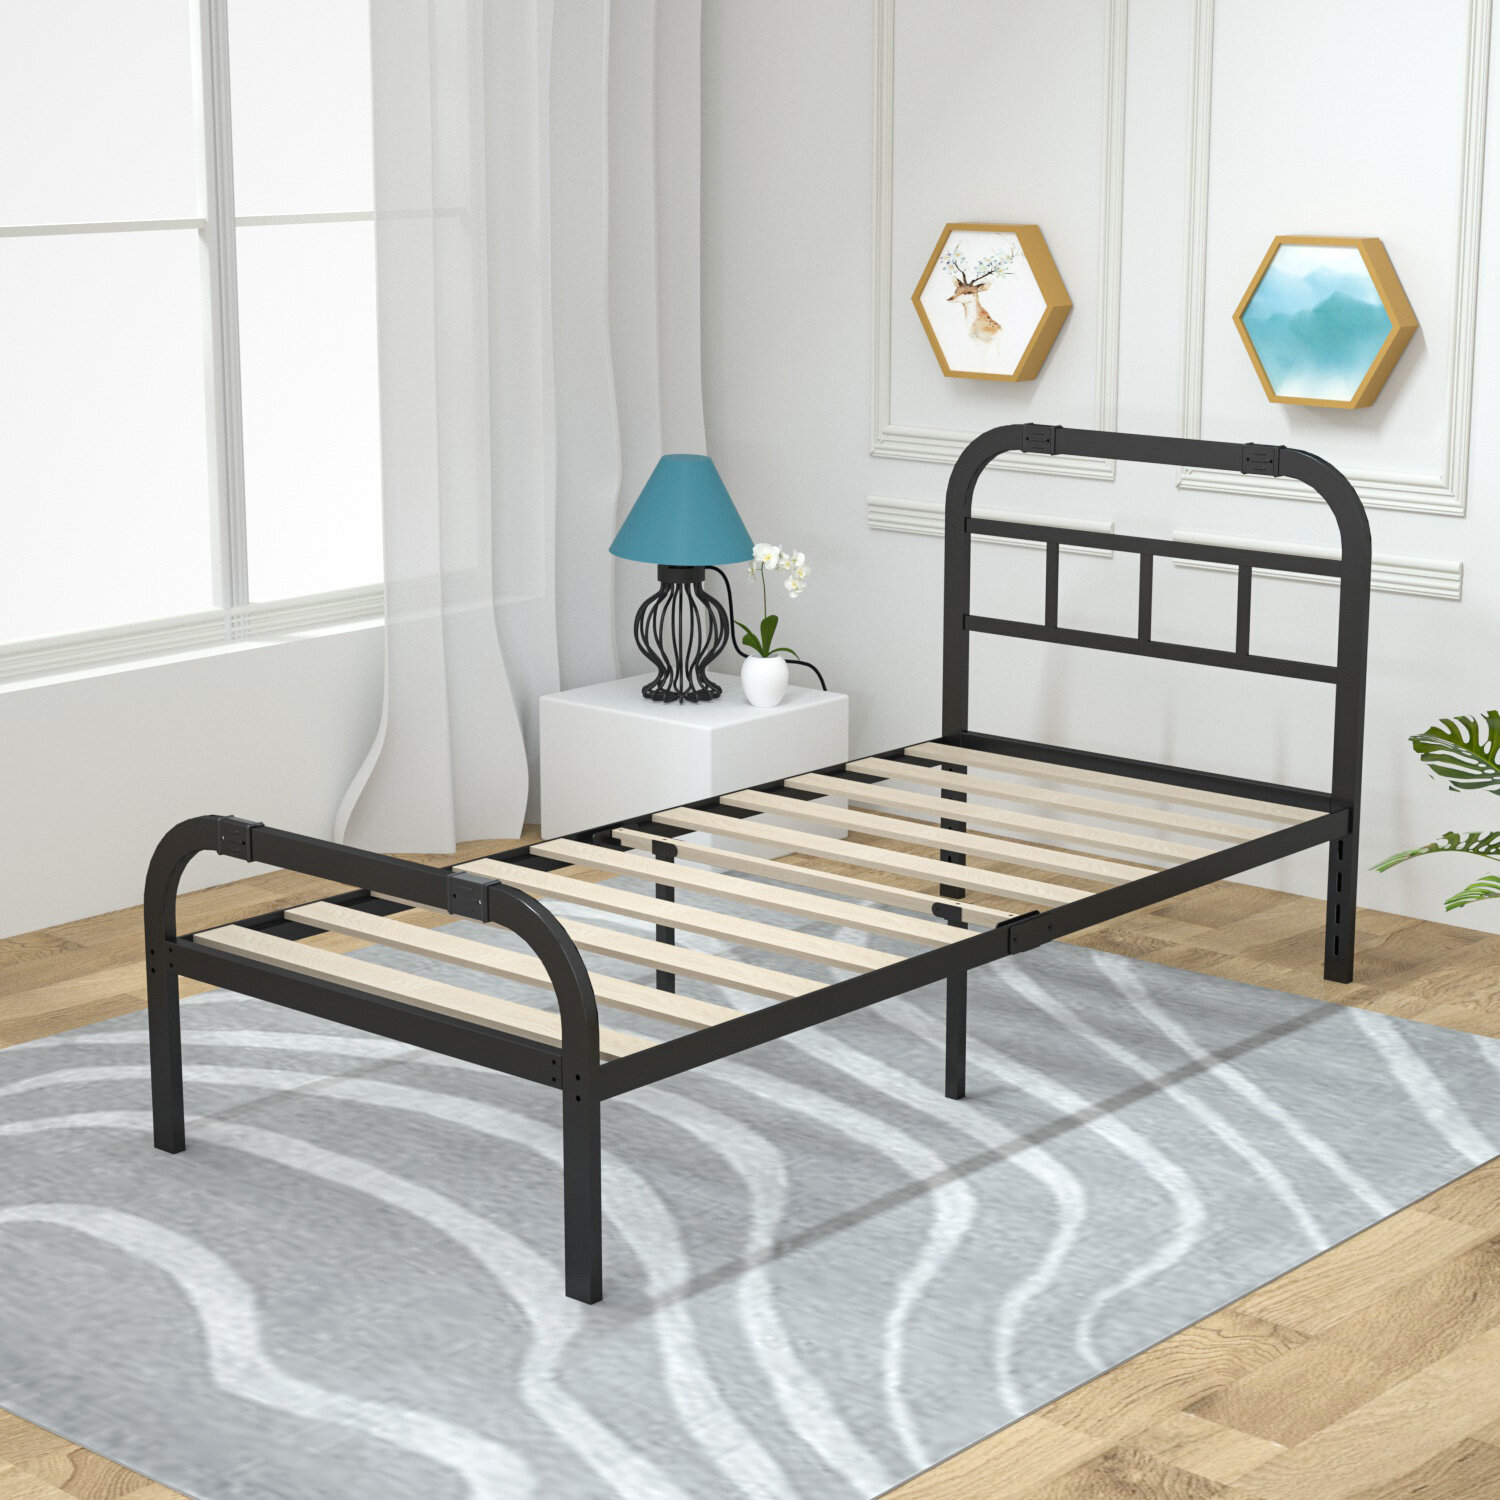 Extra Long Xl Twin Beds You Ll Love In 2021 Wayfair